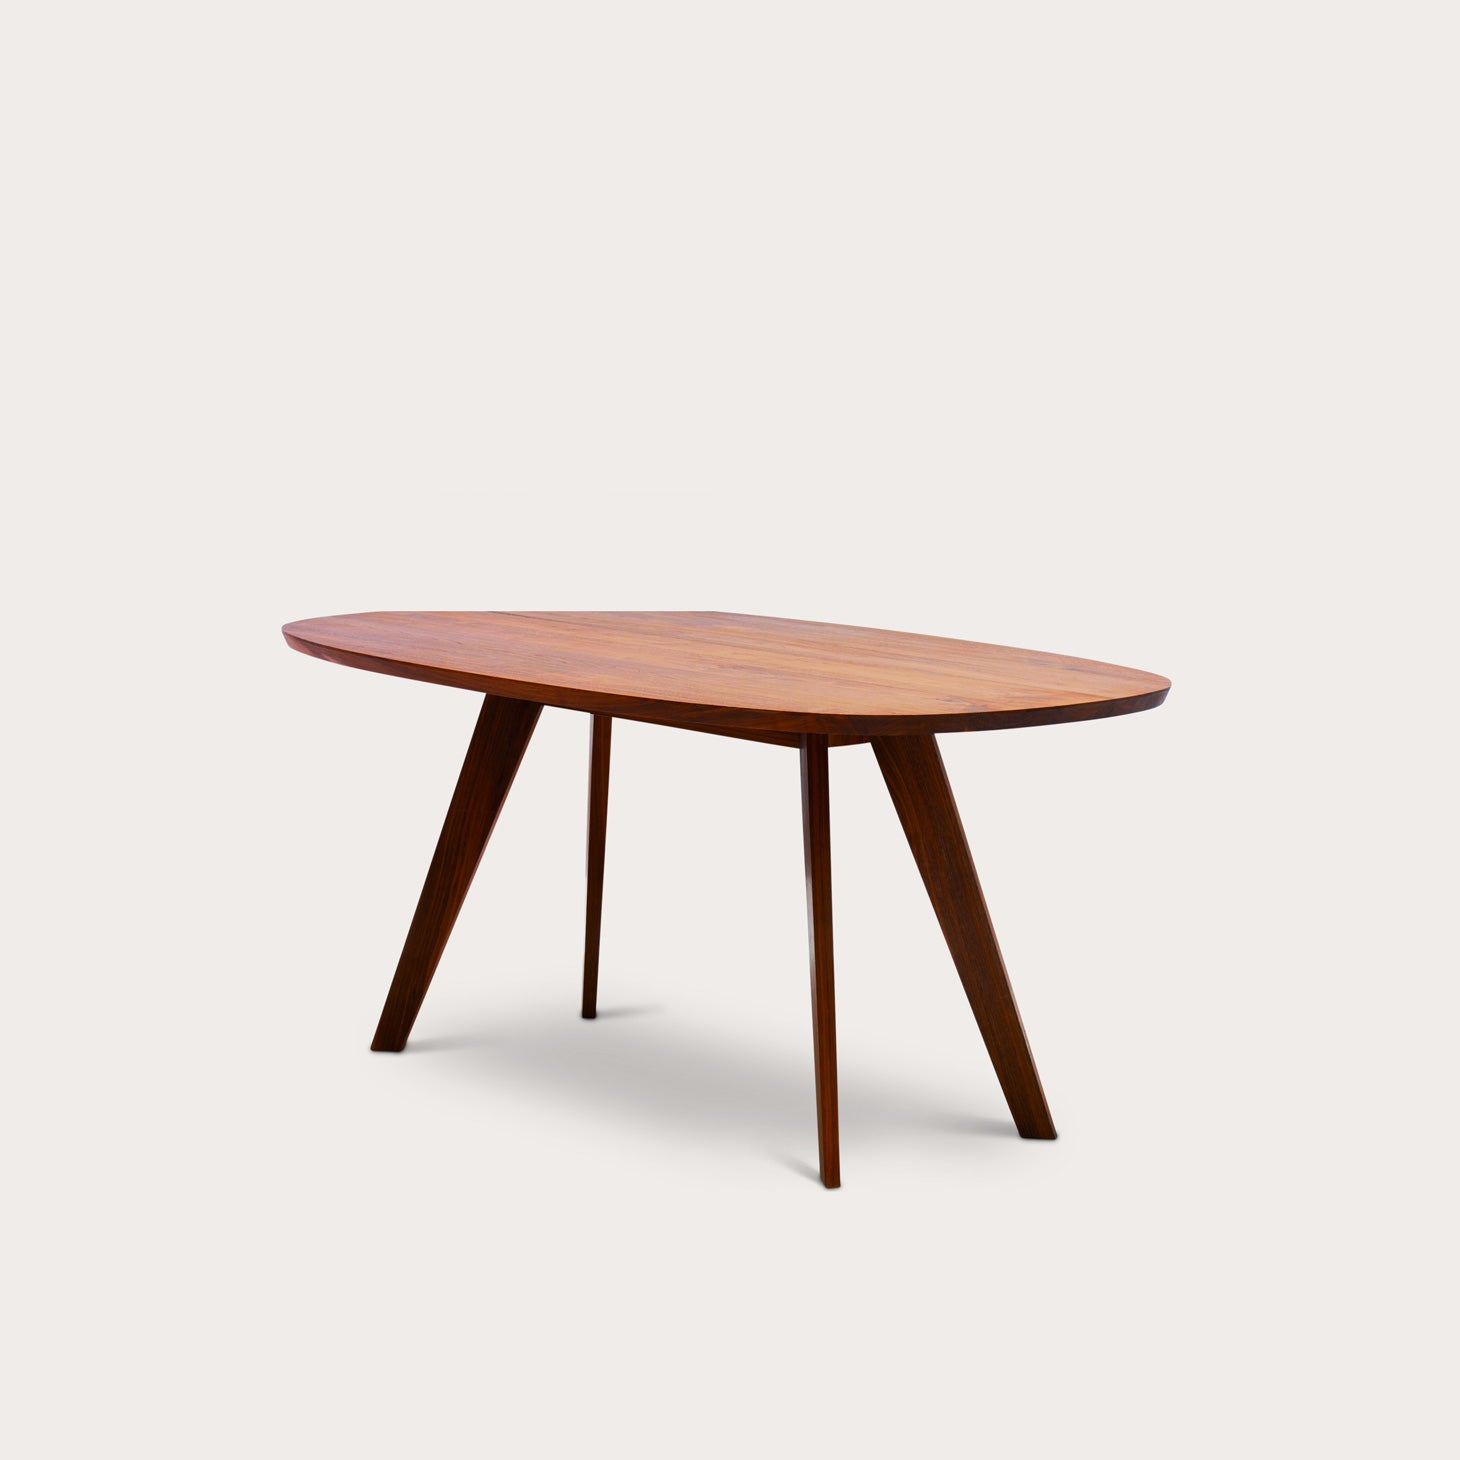 Cena Hyperelliptical Dining Table Tables Birgit Gämmerler Designer Furniture Sku: 006-230-10302